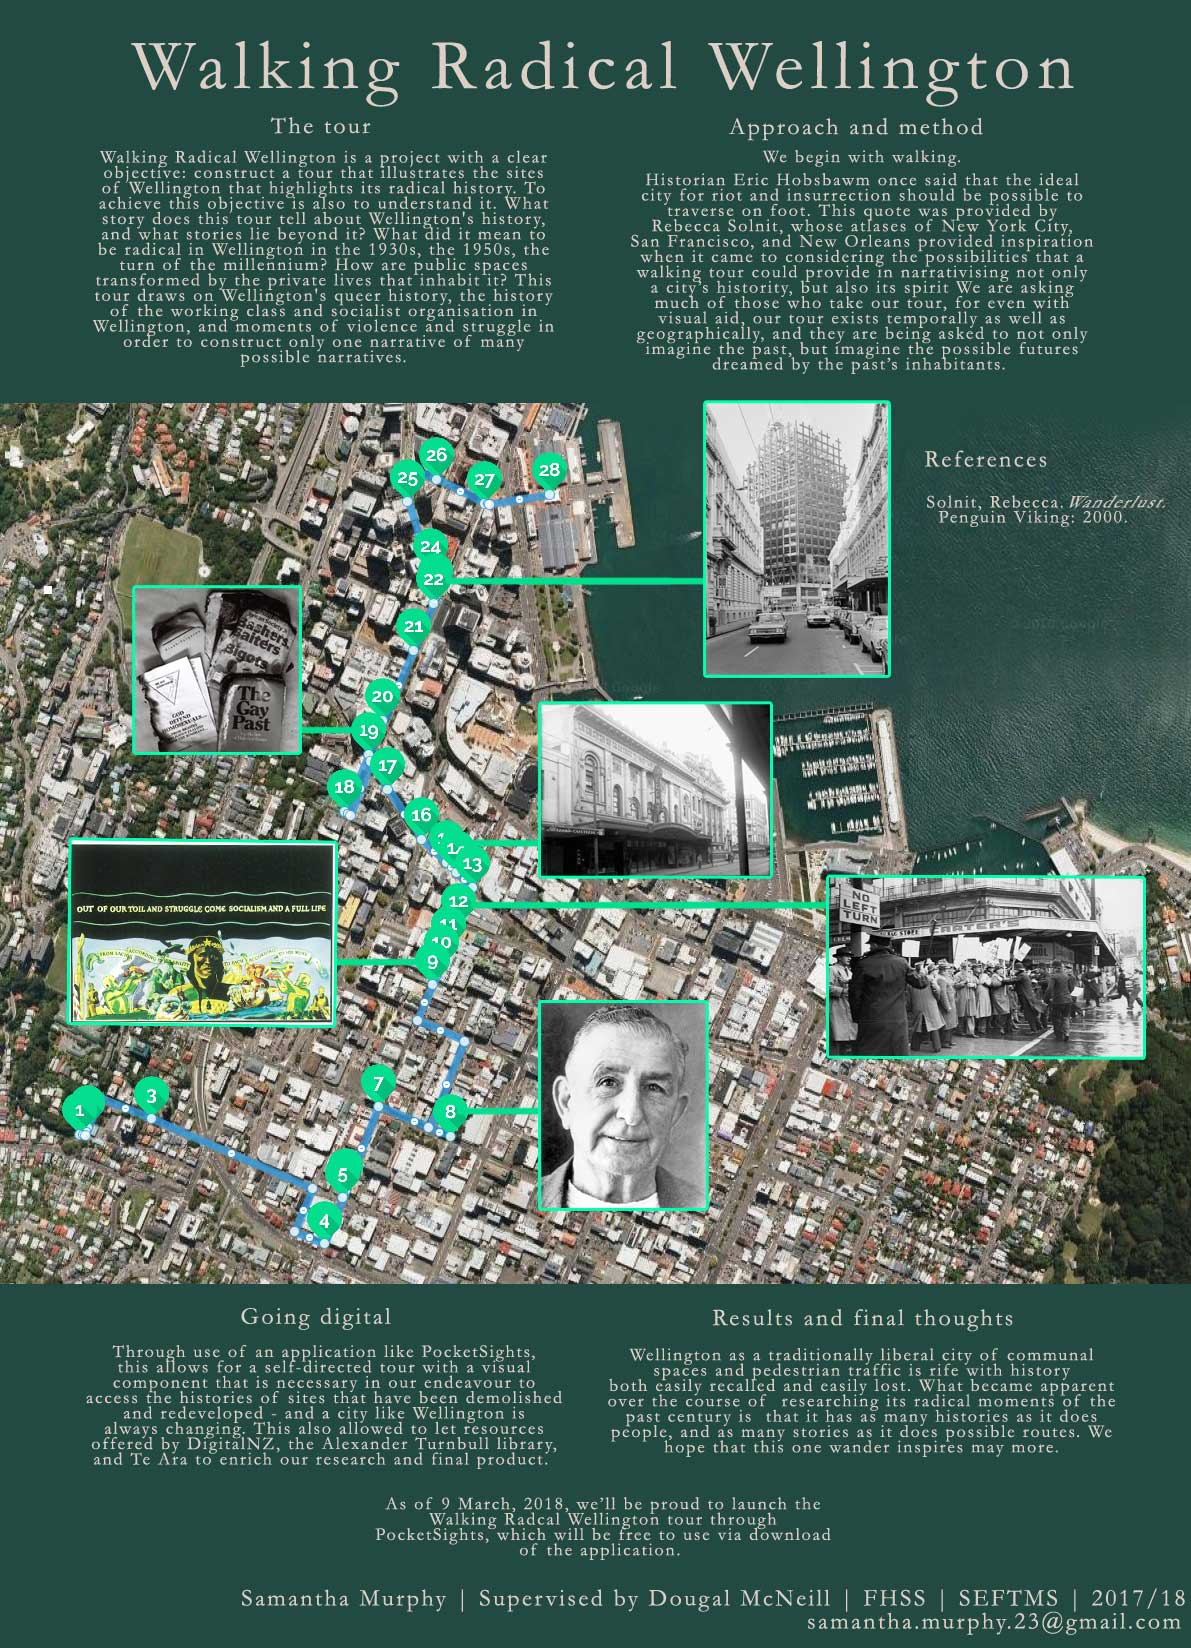 Poster highlighting the radical history of Wellington